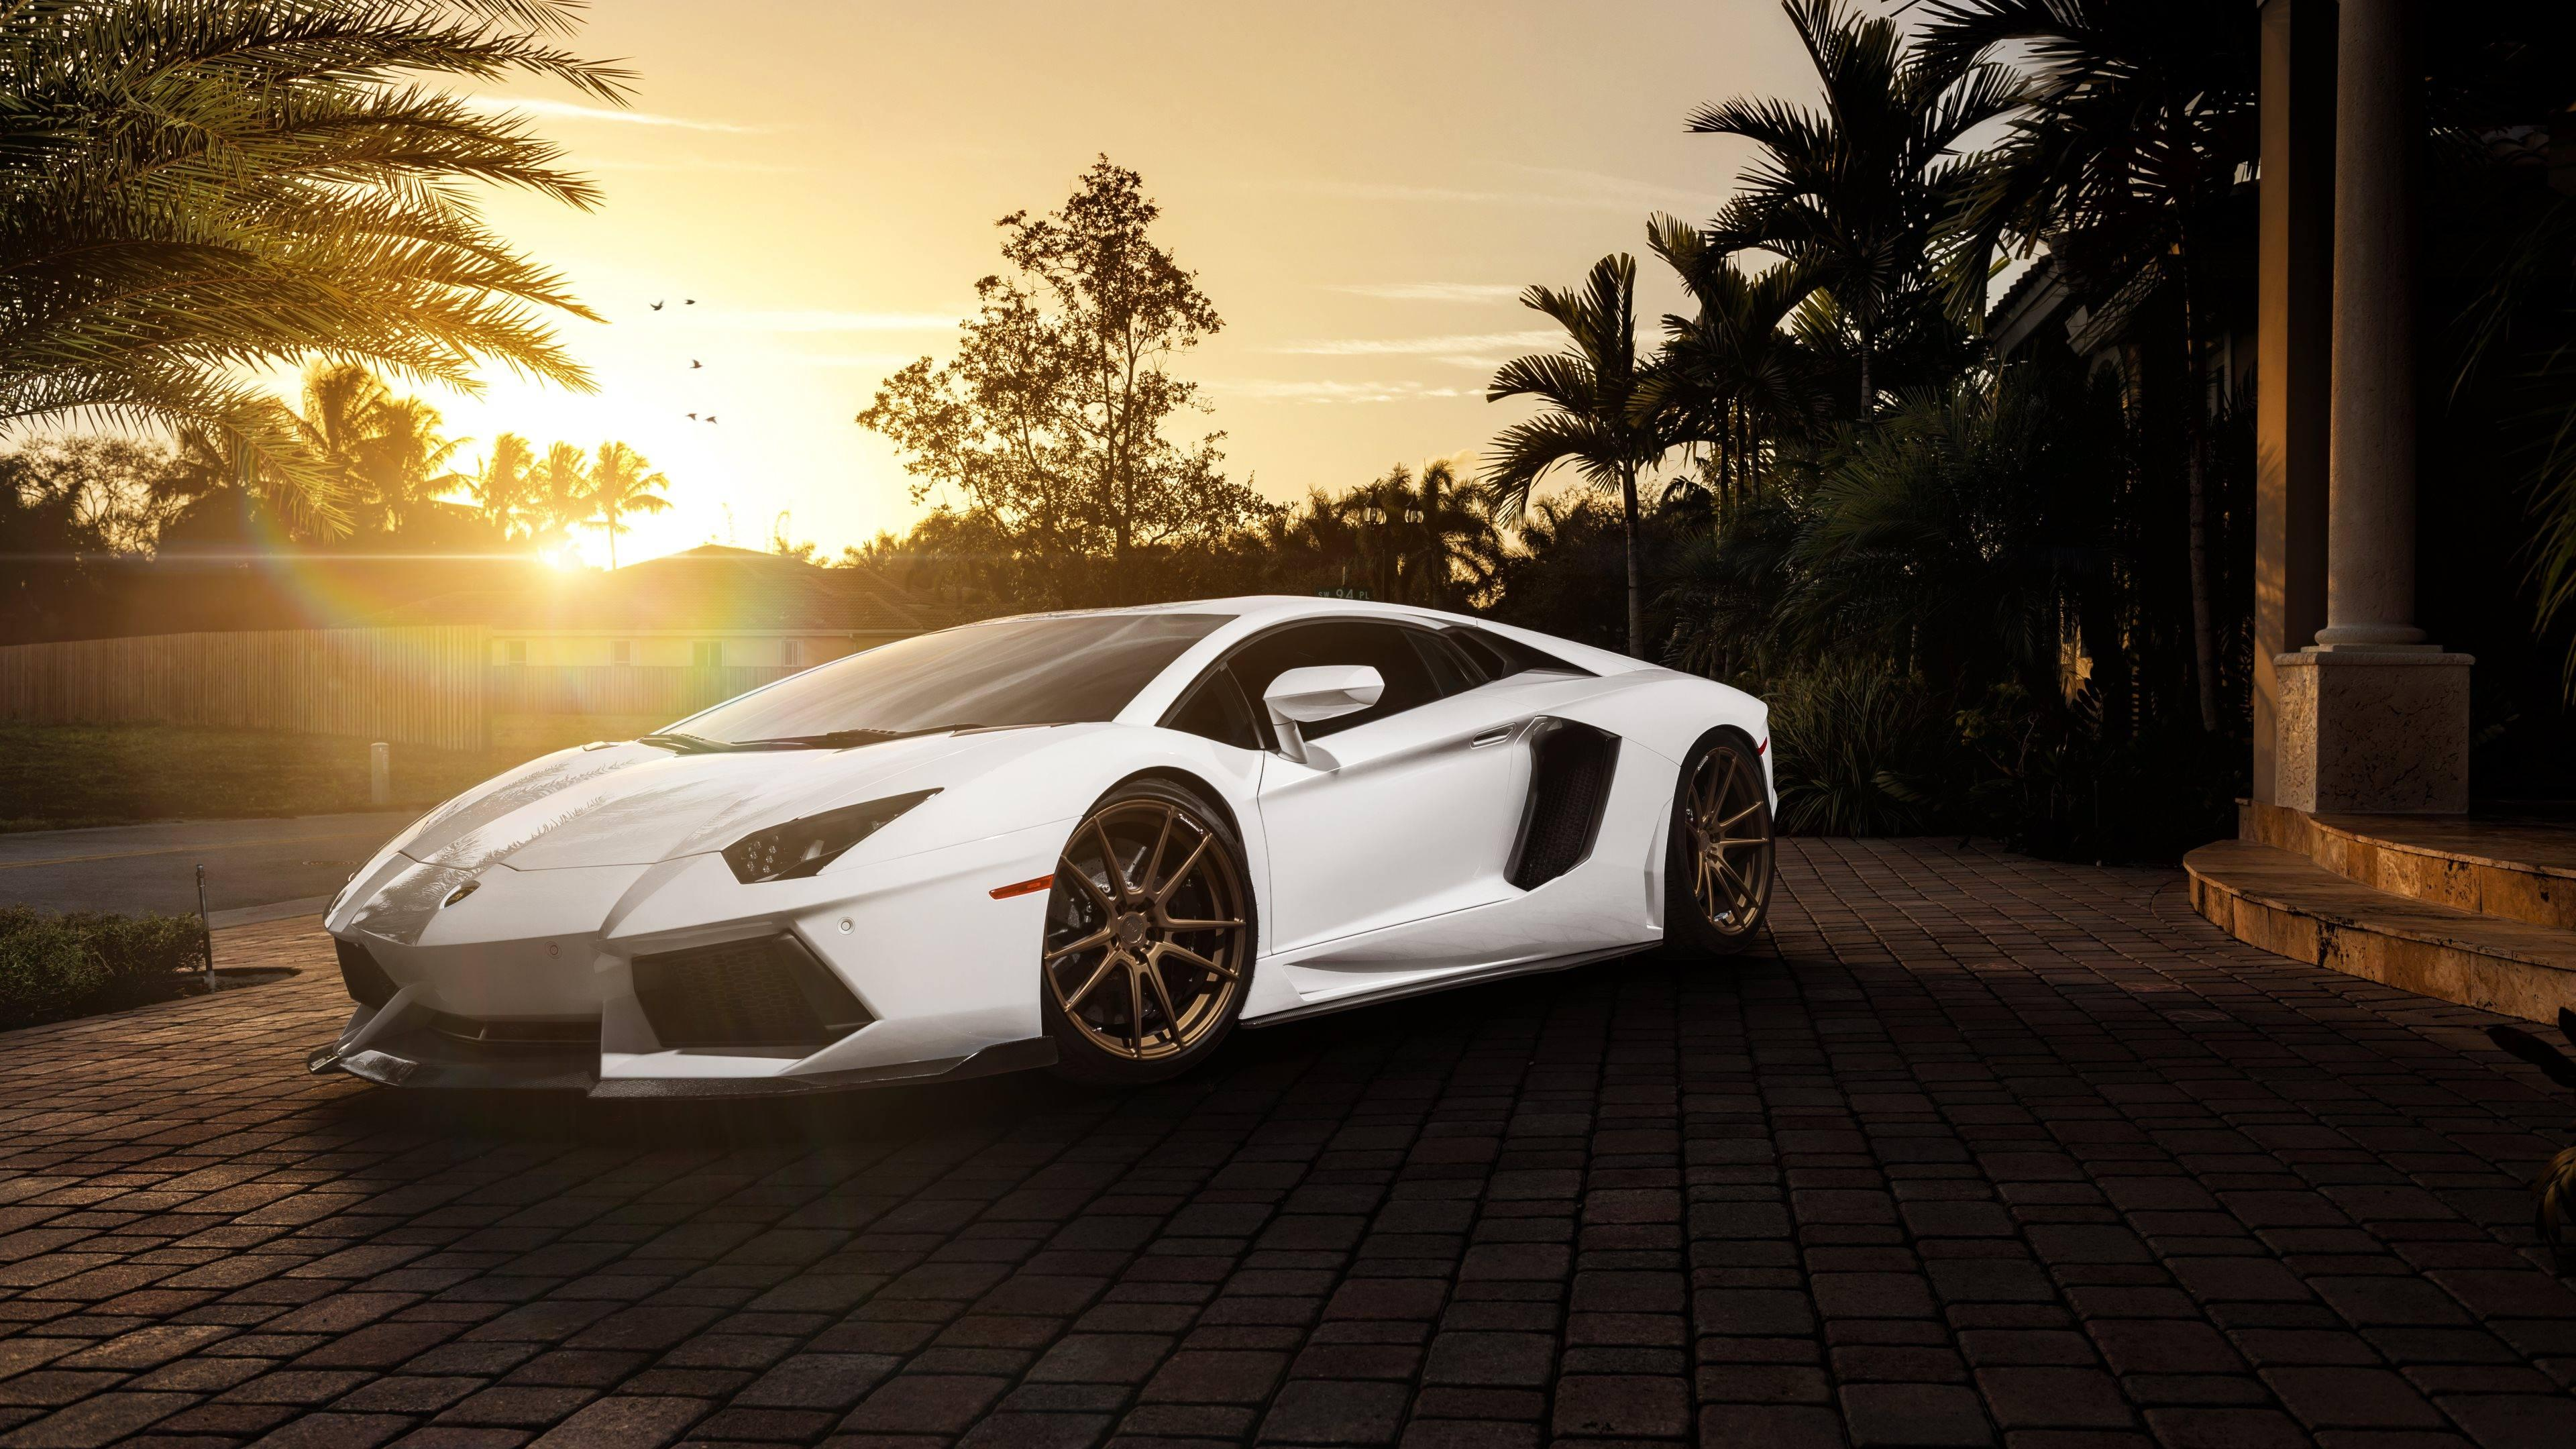 Lamborghini 4k Wallpaper Wallpapersafari